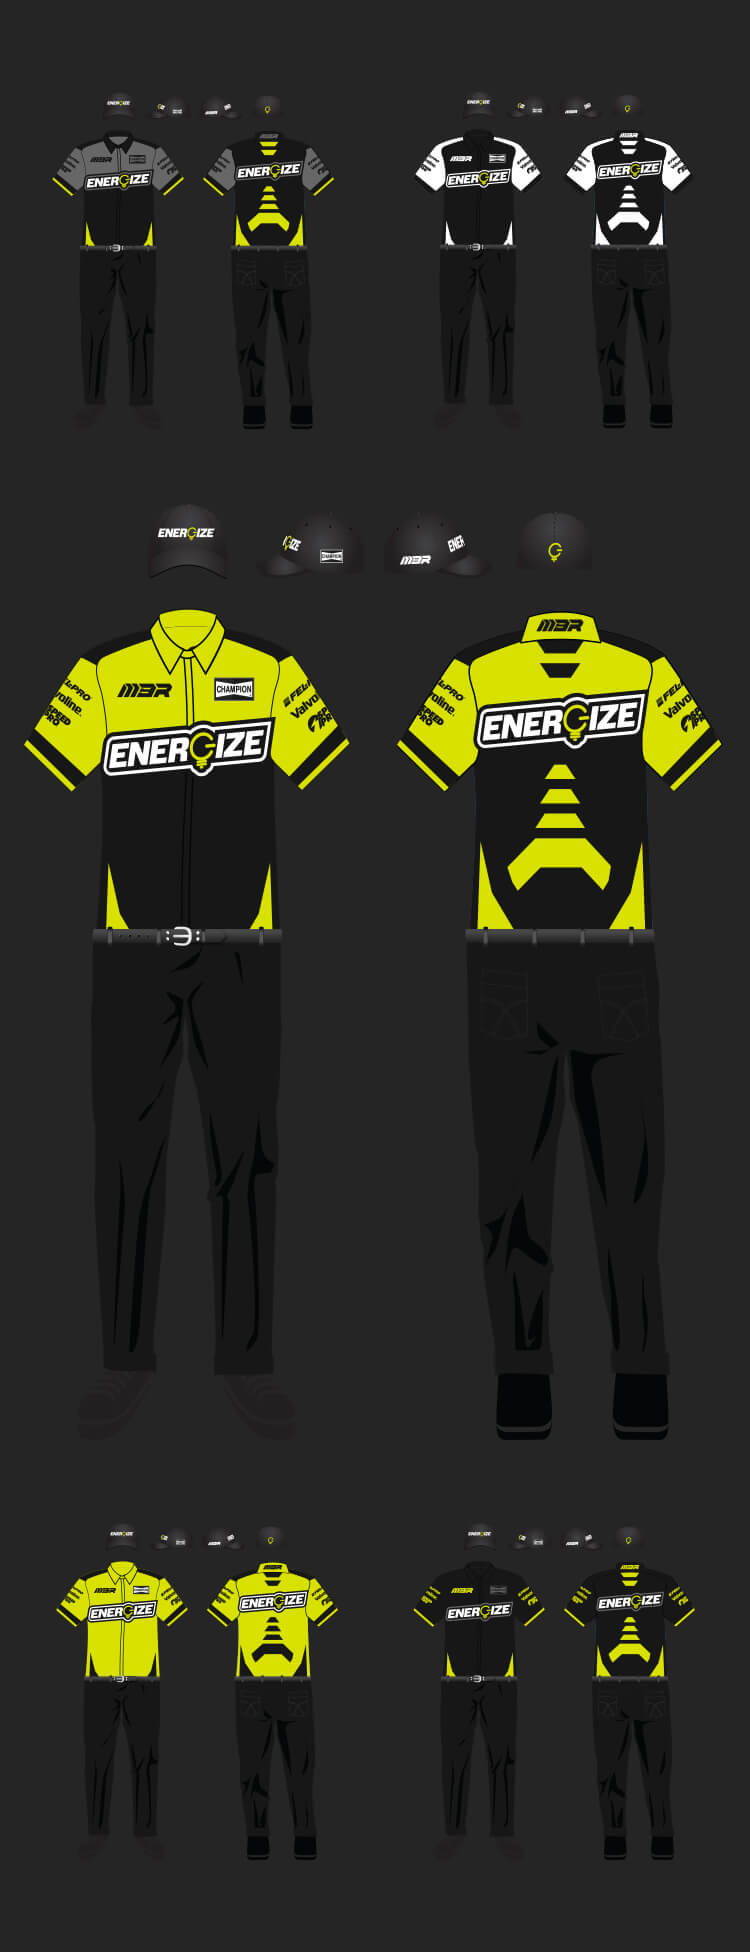 React104 concepted multiple options for the ENERGIZE uniforms.